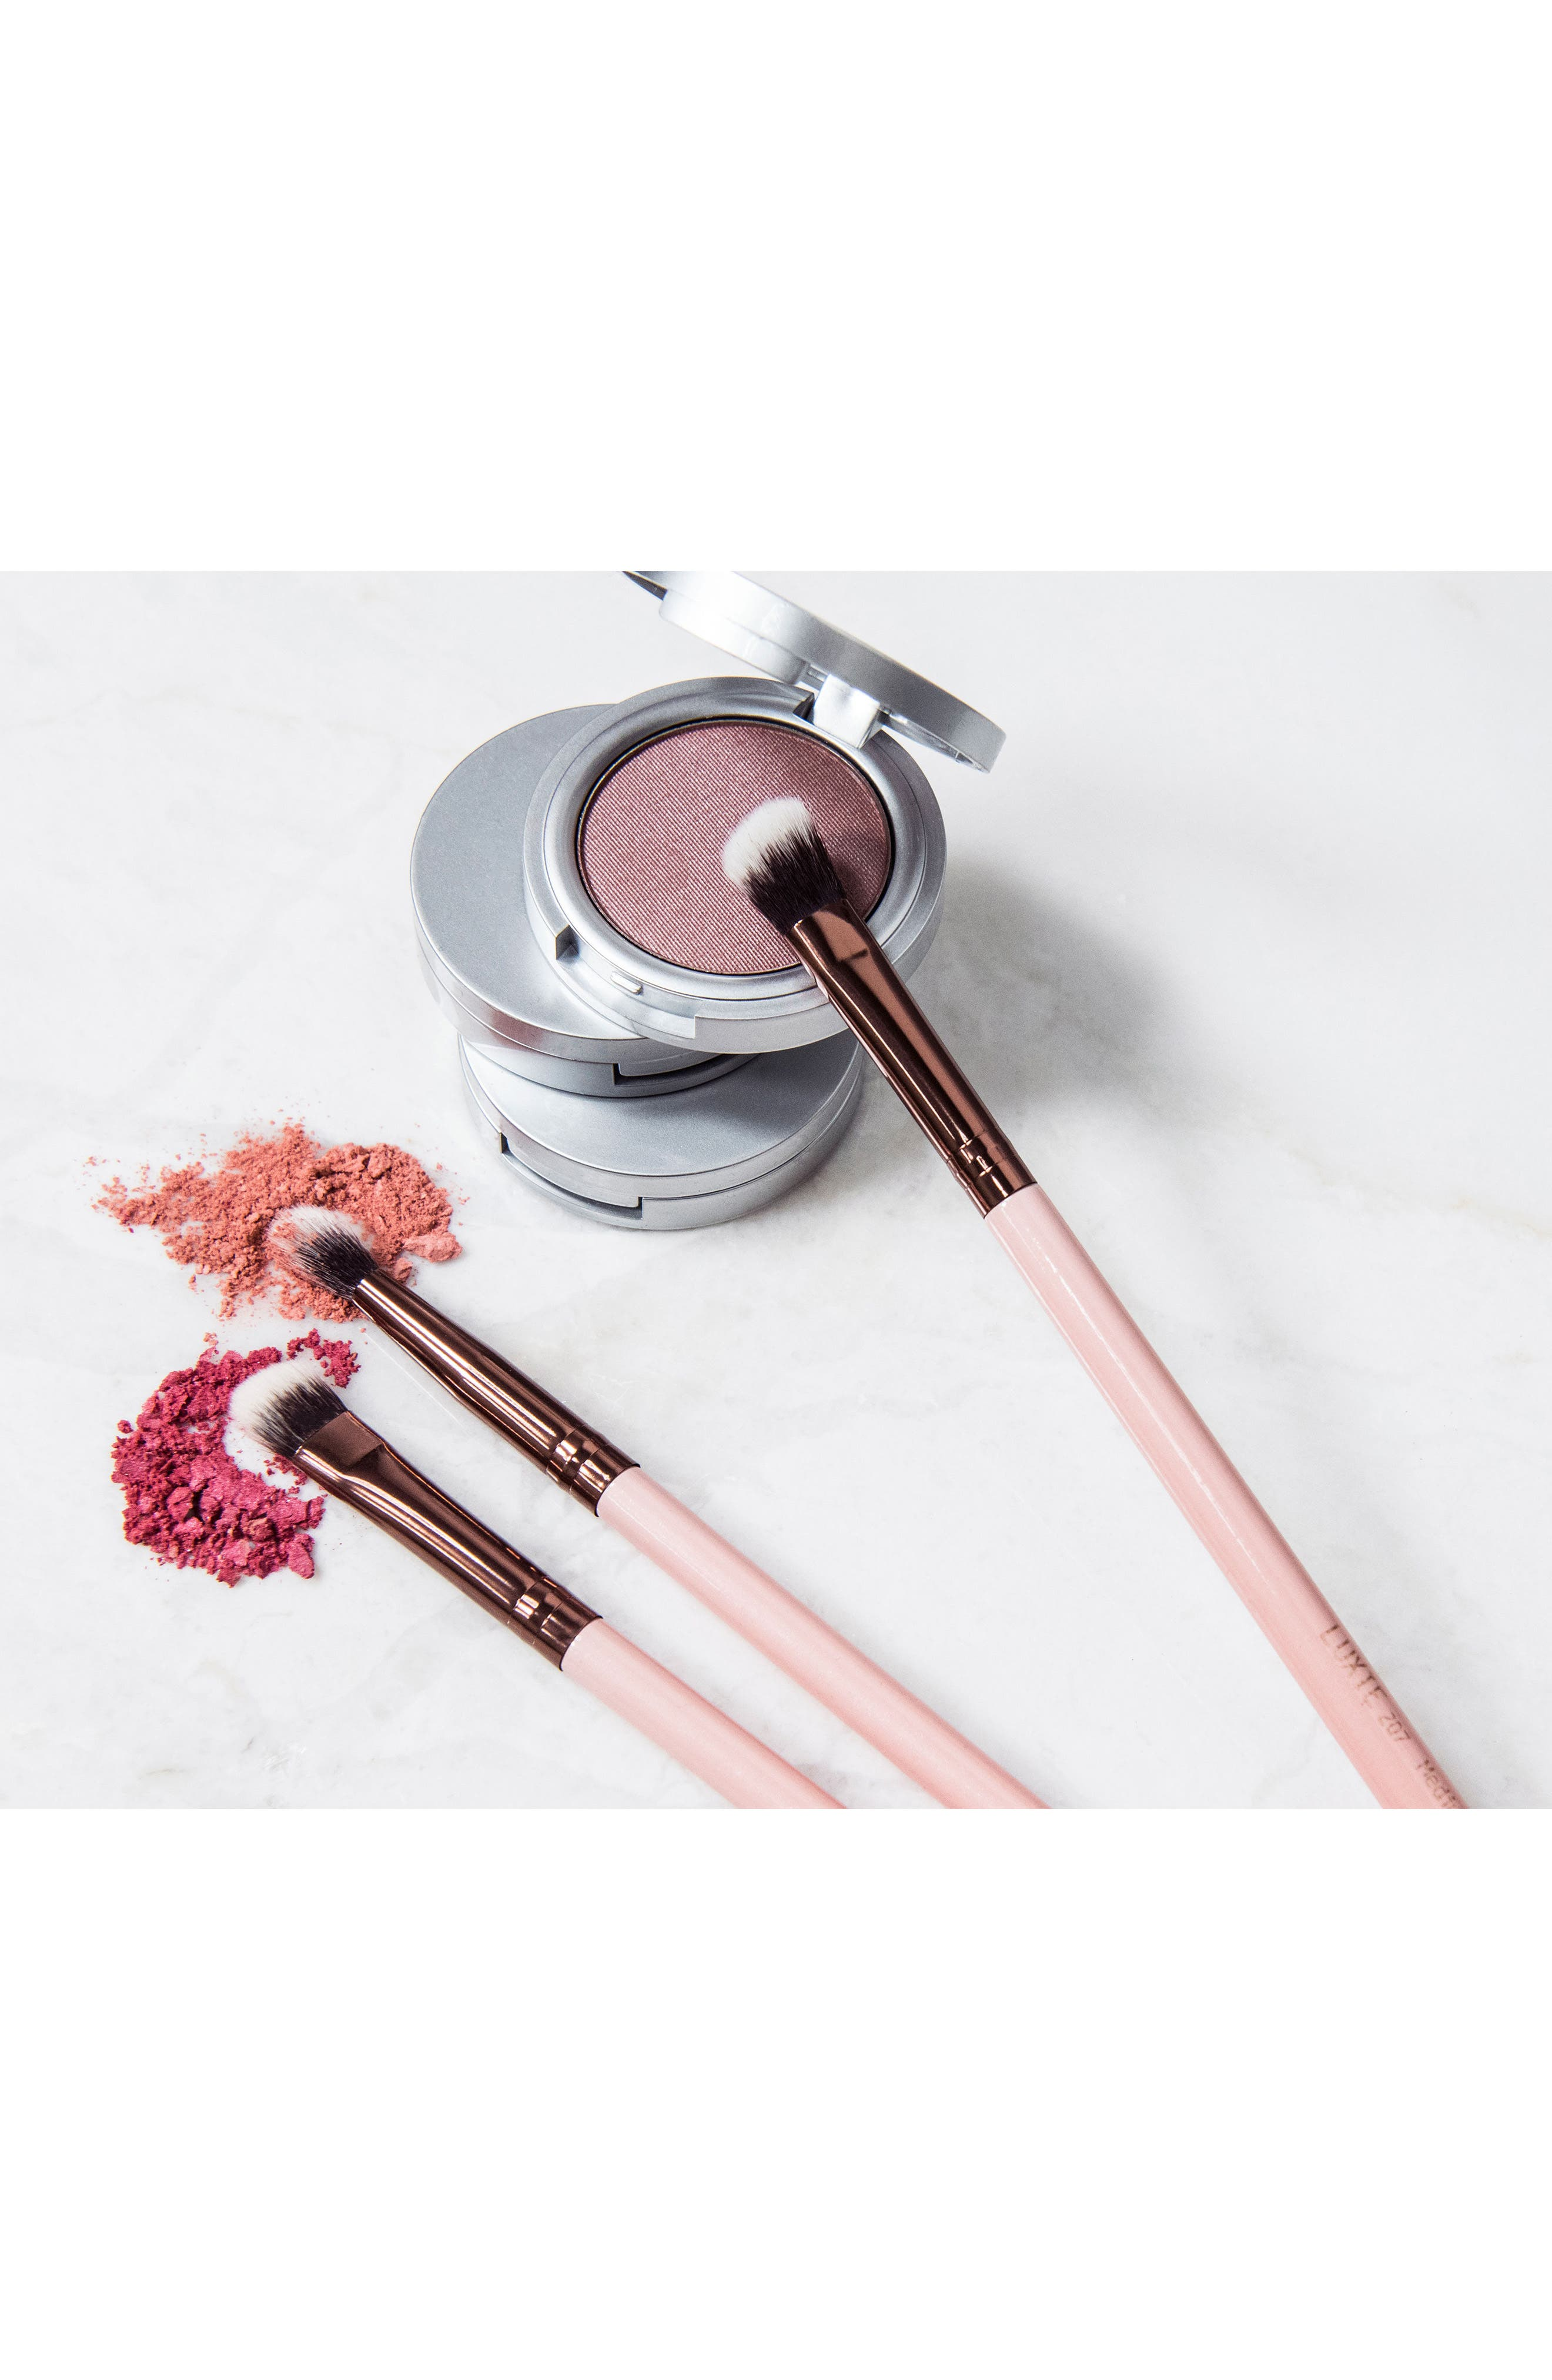 215 Rose Gold Small Angle Brush,                             Alternate thumbnail 2, color,                             No Color